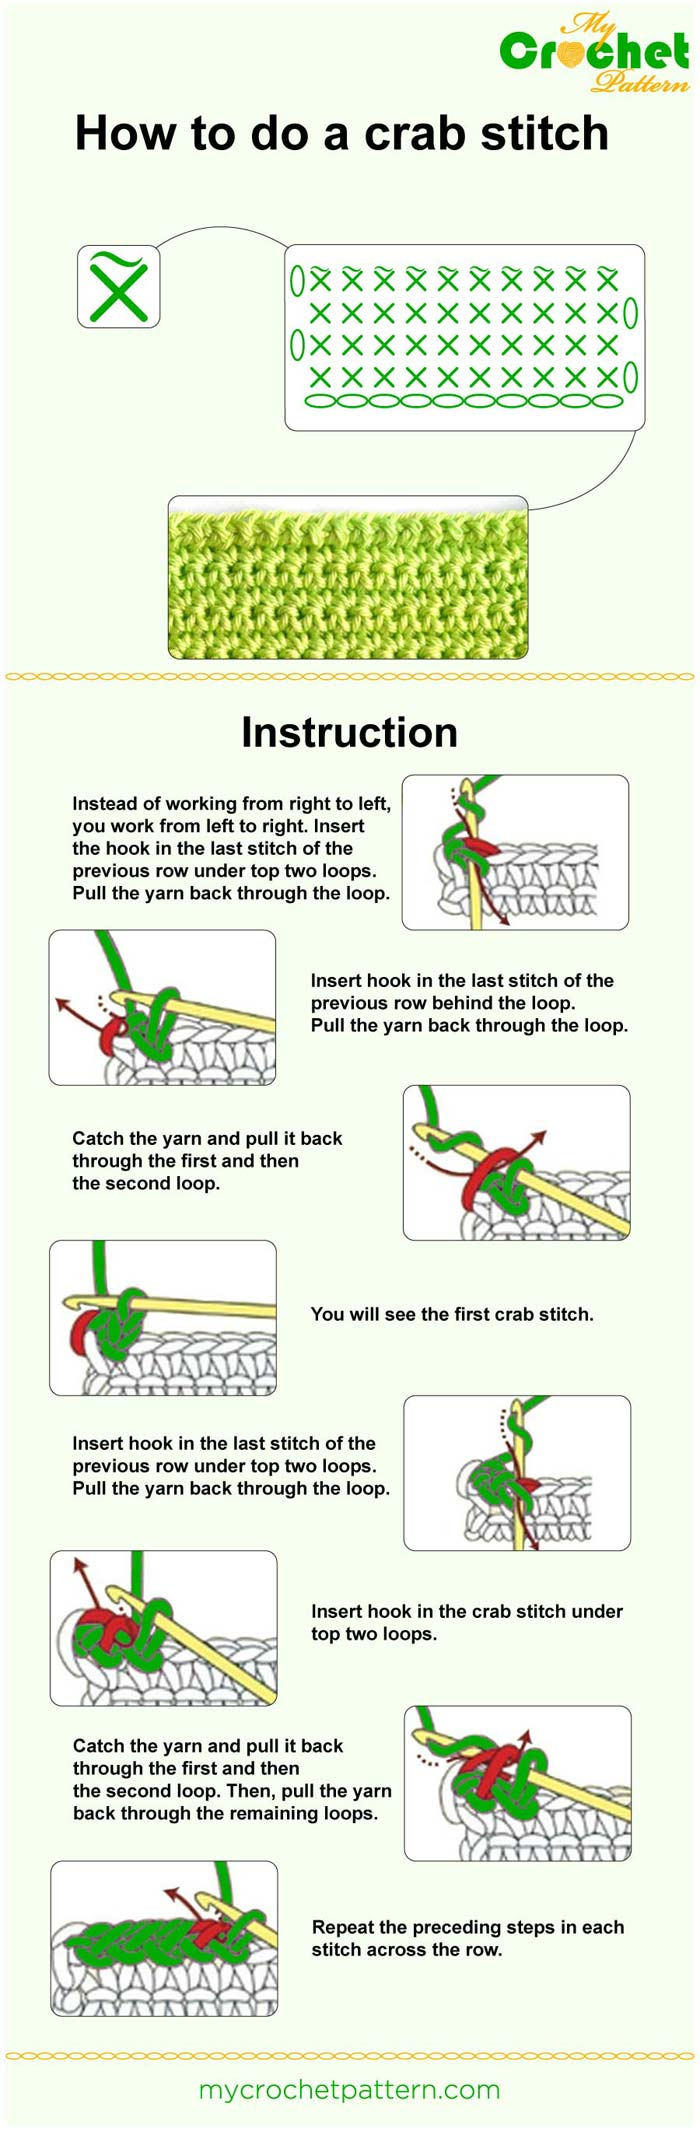 how to do a crab stitch (method 2) - infographic